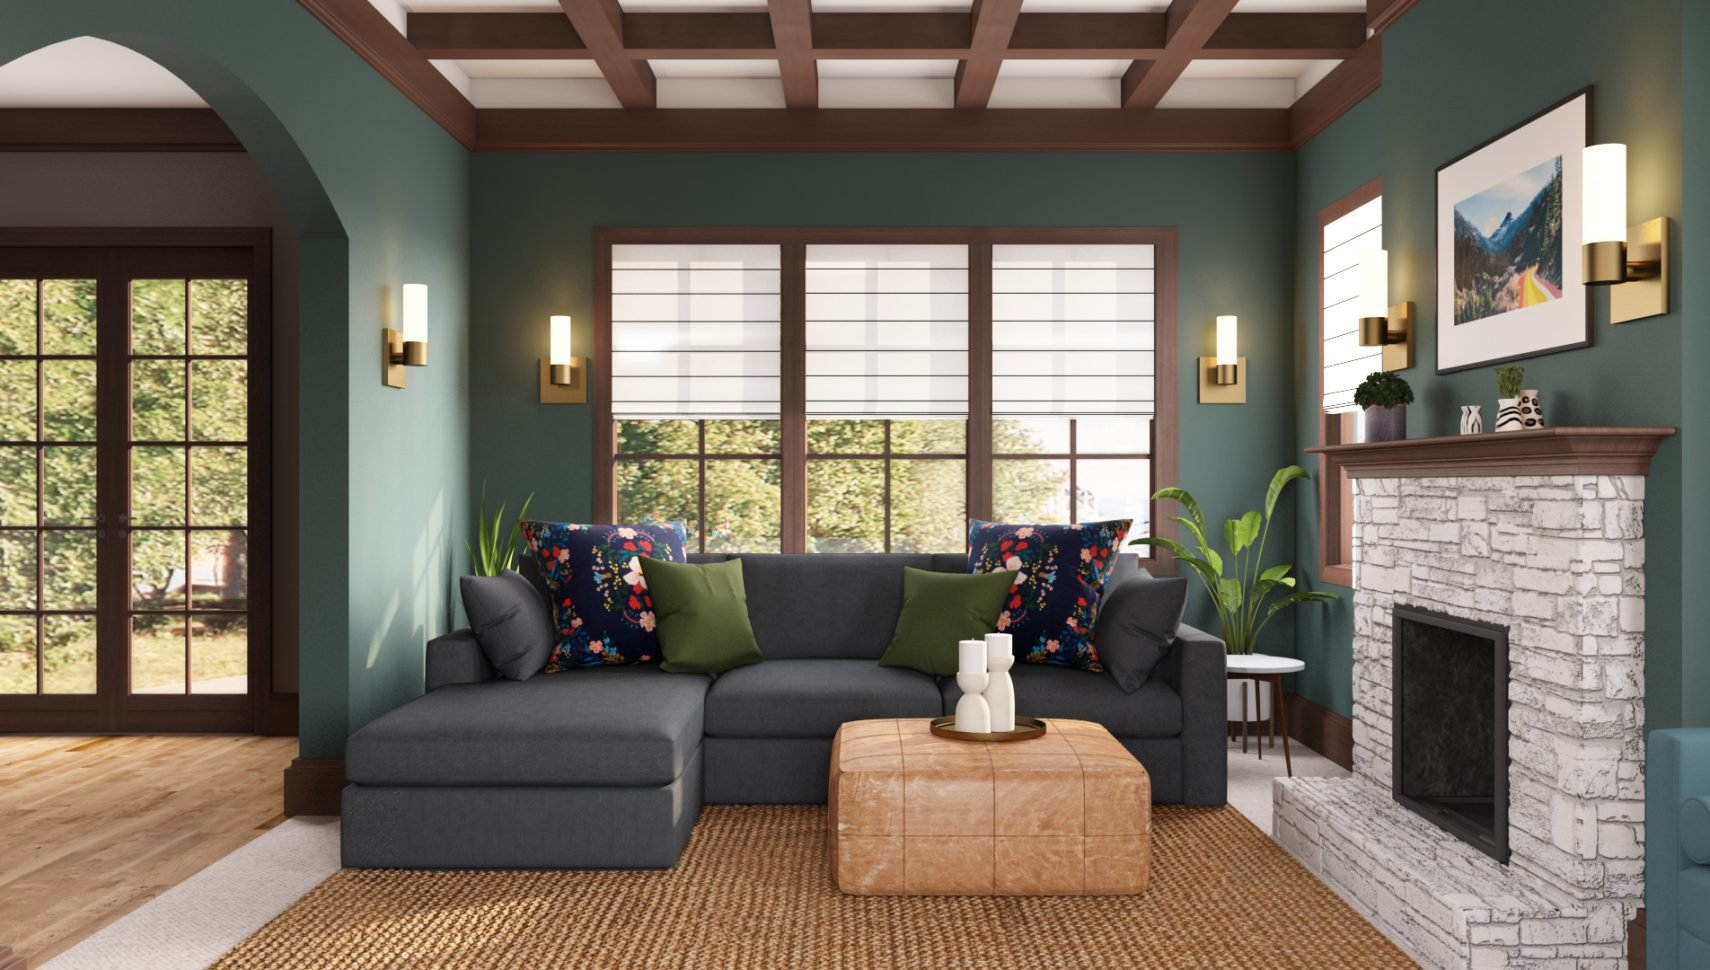 5 Living Room Paint Color Ideas To Refresh Your Space Havenly Interior Design Blog